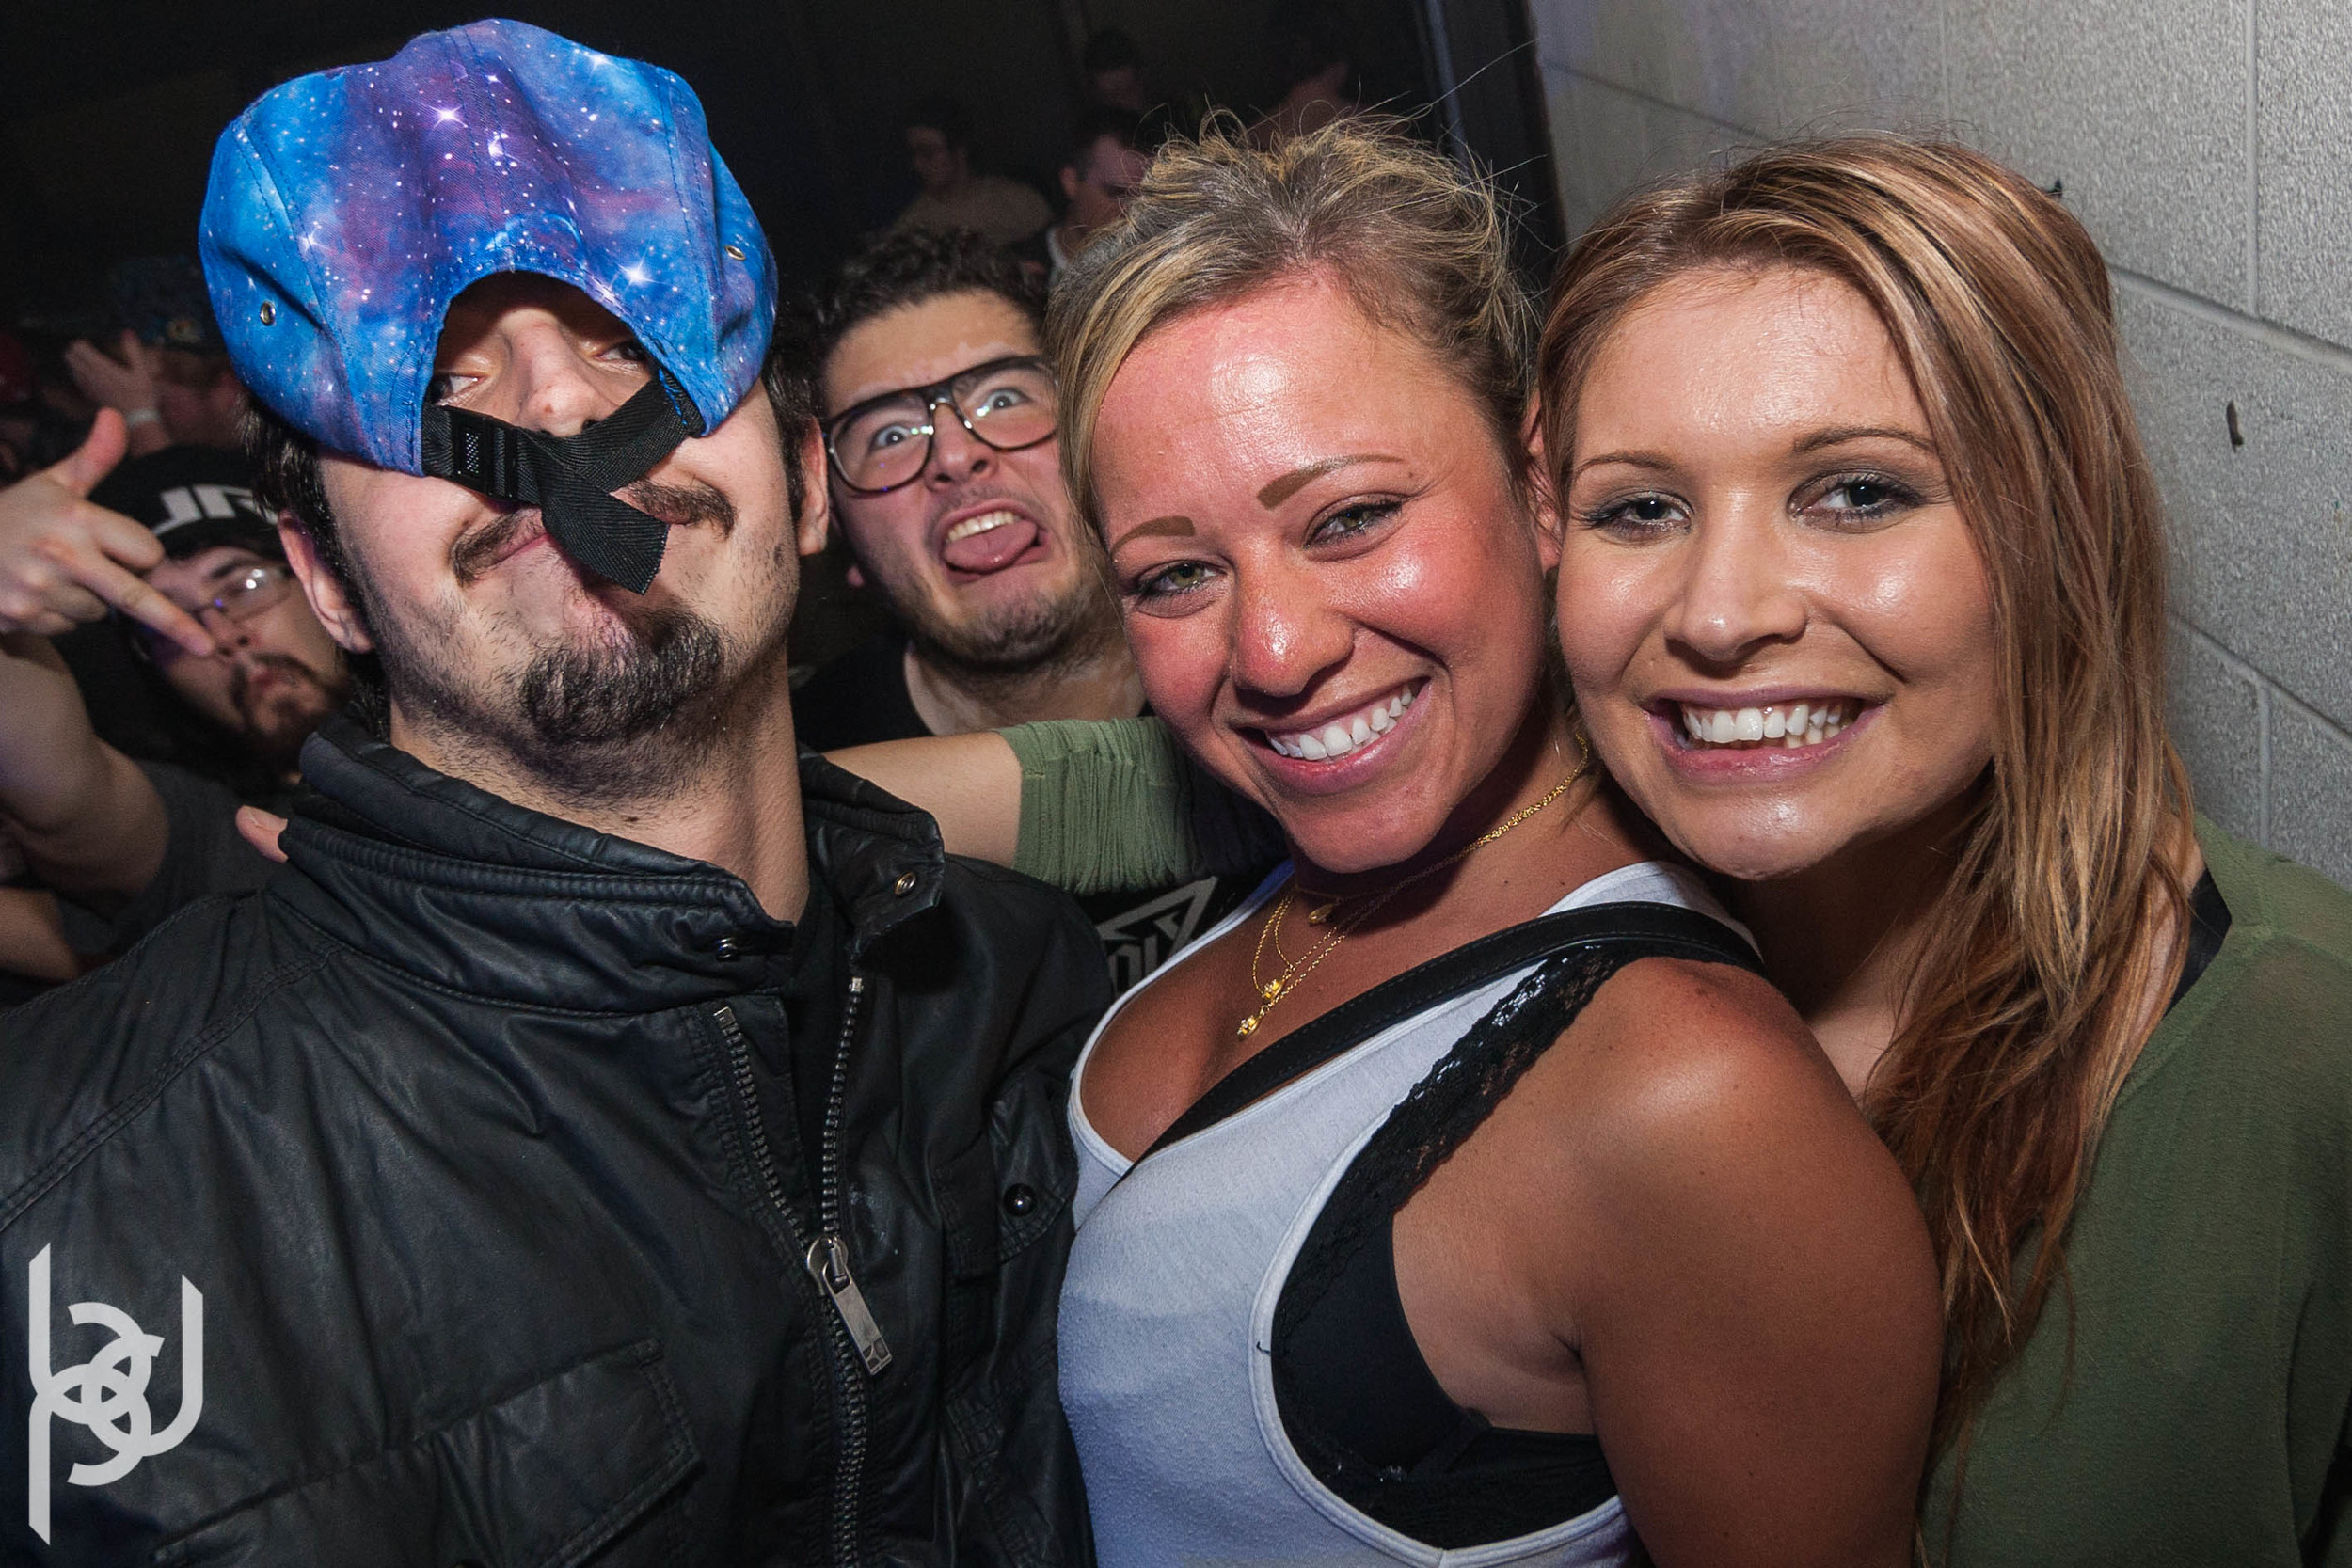 DOWNLINK, DIESELBOY, AJAPAI, MANTIS at The Loft 031414 BDP-55.jpg